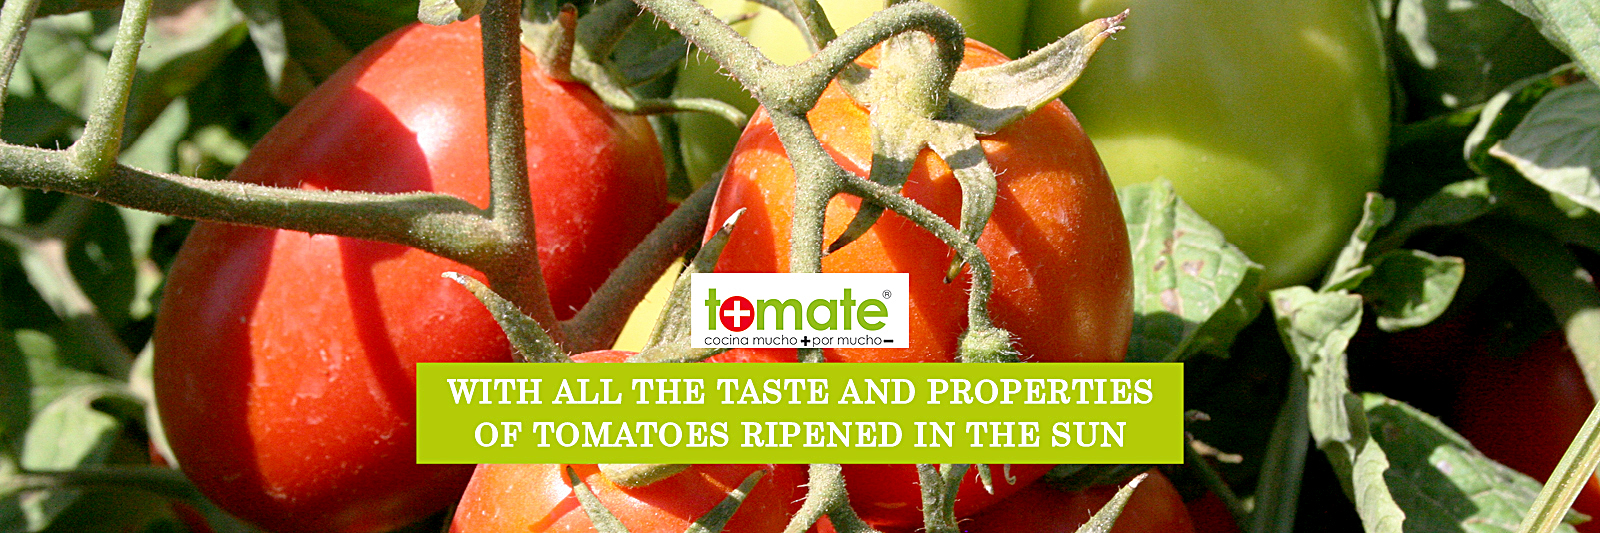 With all the taste and properties of tomatoes rippened in the sun